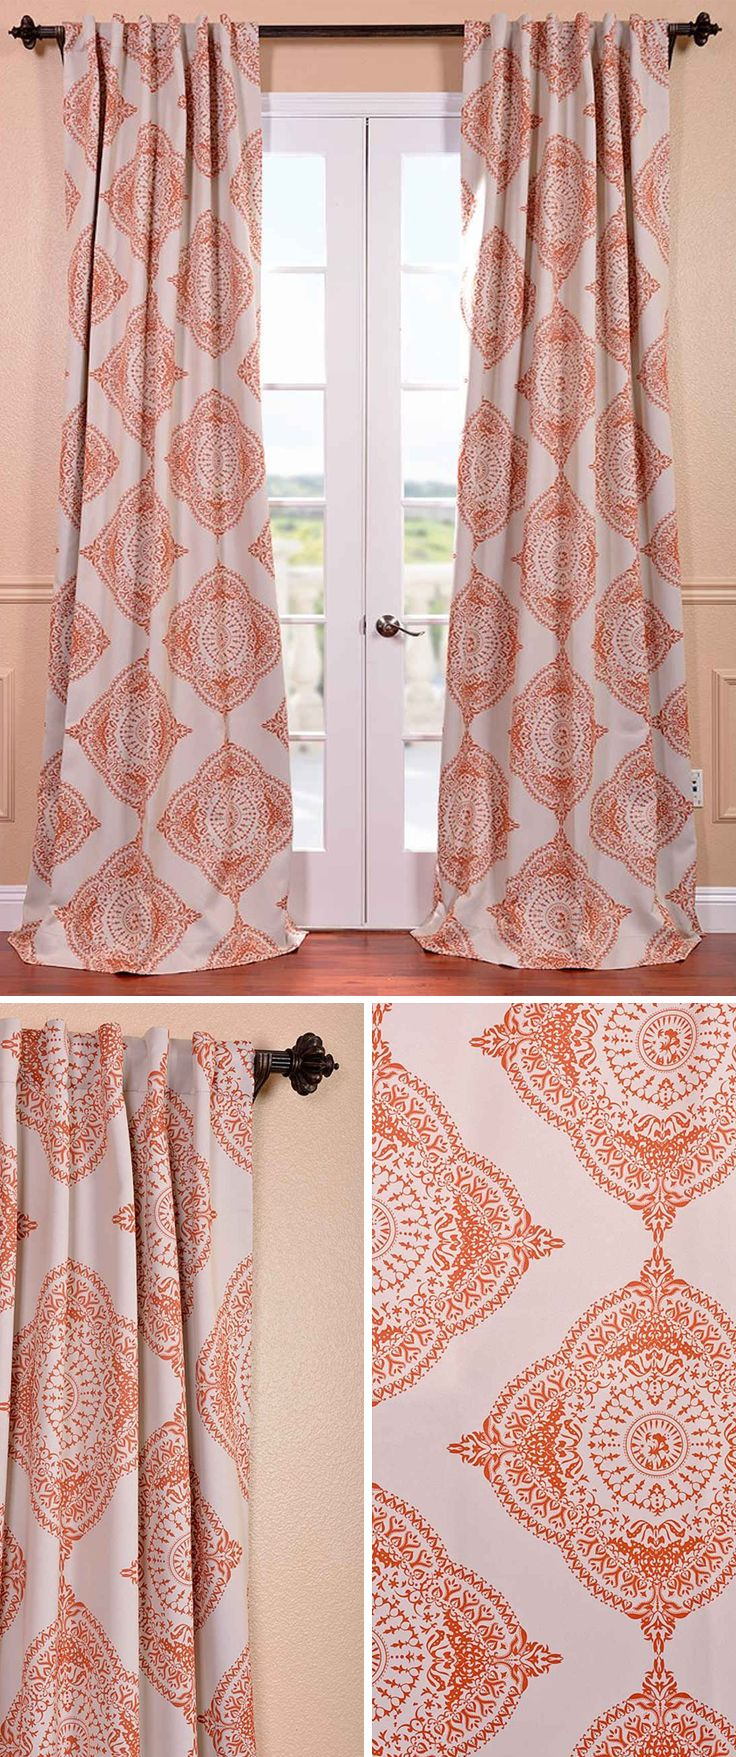 You will instantly fall in love with our blackout curtains and drapes. The fabric is super soft with a refined texture and is made with a special polyester yarn. These curtains will keep the light out and provide optimal thermal insulation.